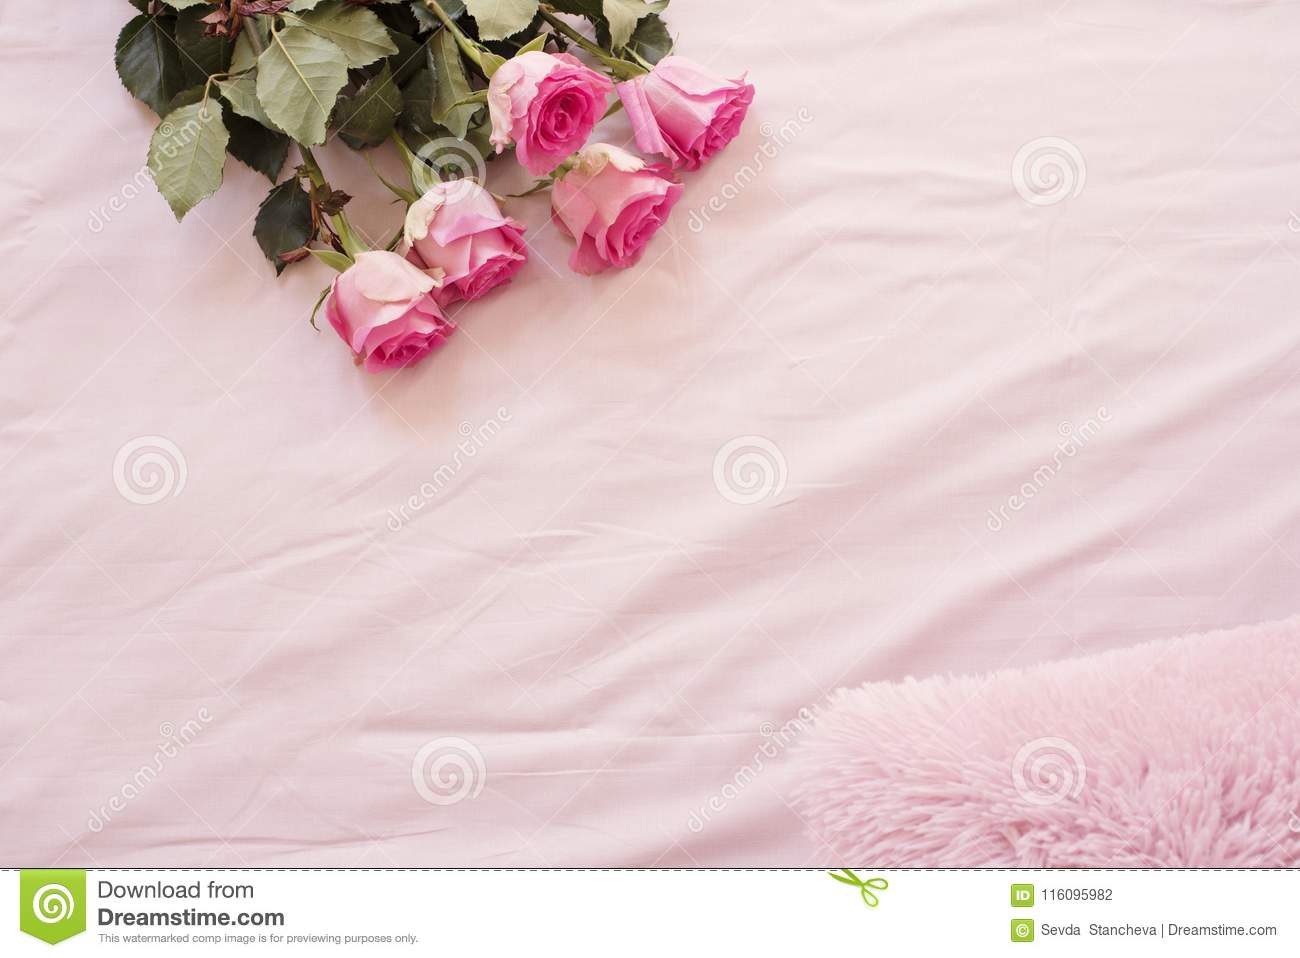 Download Floral Frame With Stunning Pink Roses On Pink Bed Sheets In The  Bedroom. Copy